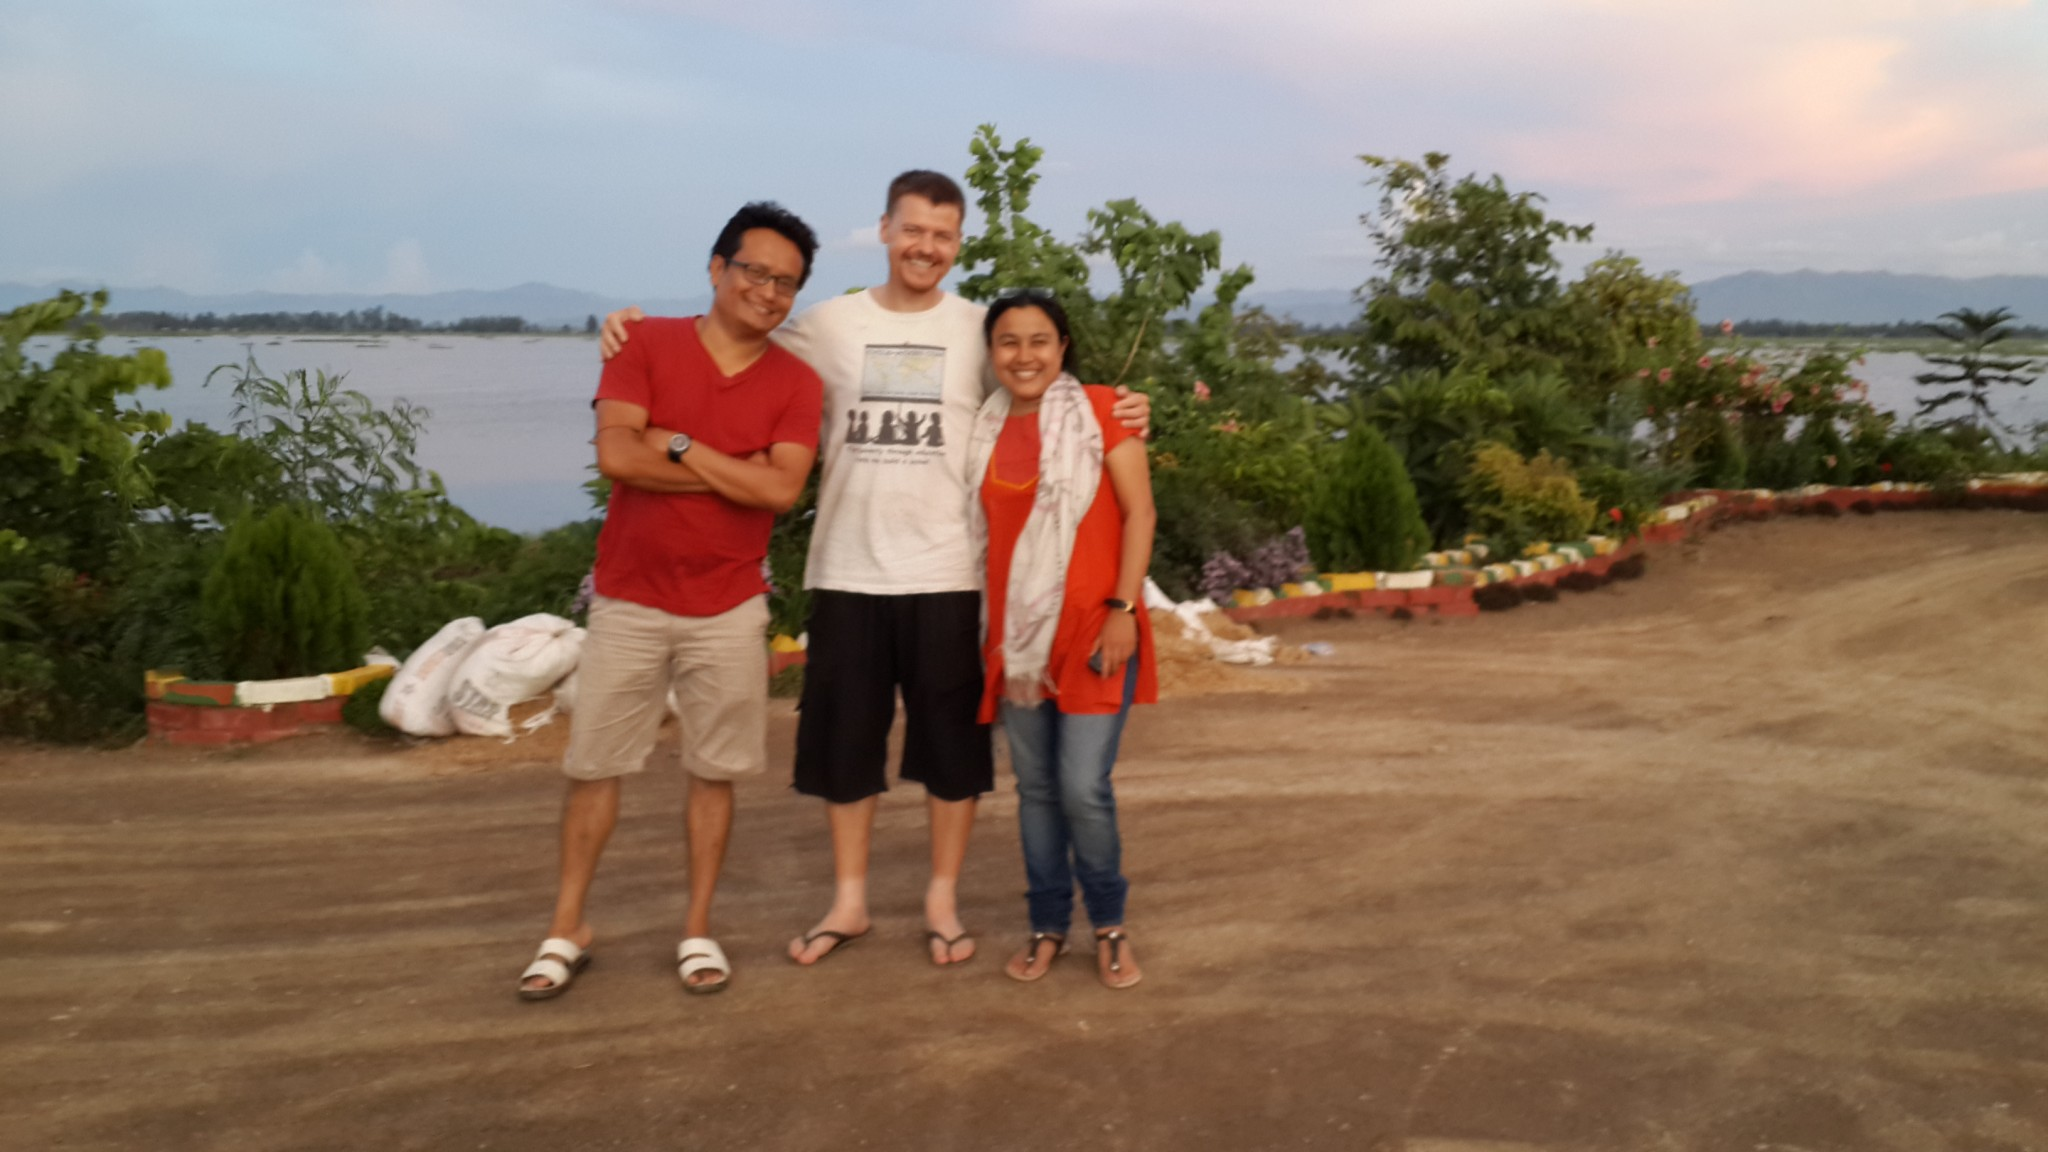 Citesh, me and Sundari, who wrote an article with Porcia, for the local newspaper about my visit.